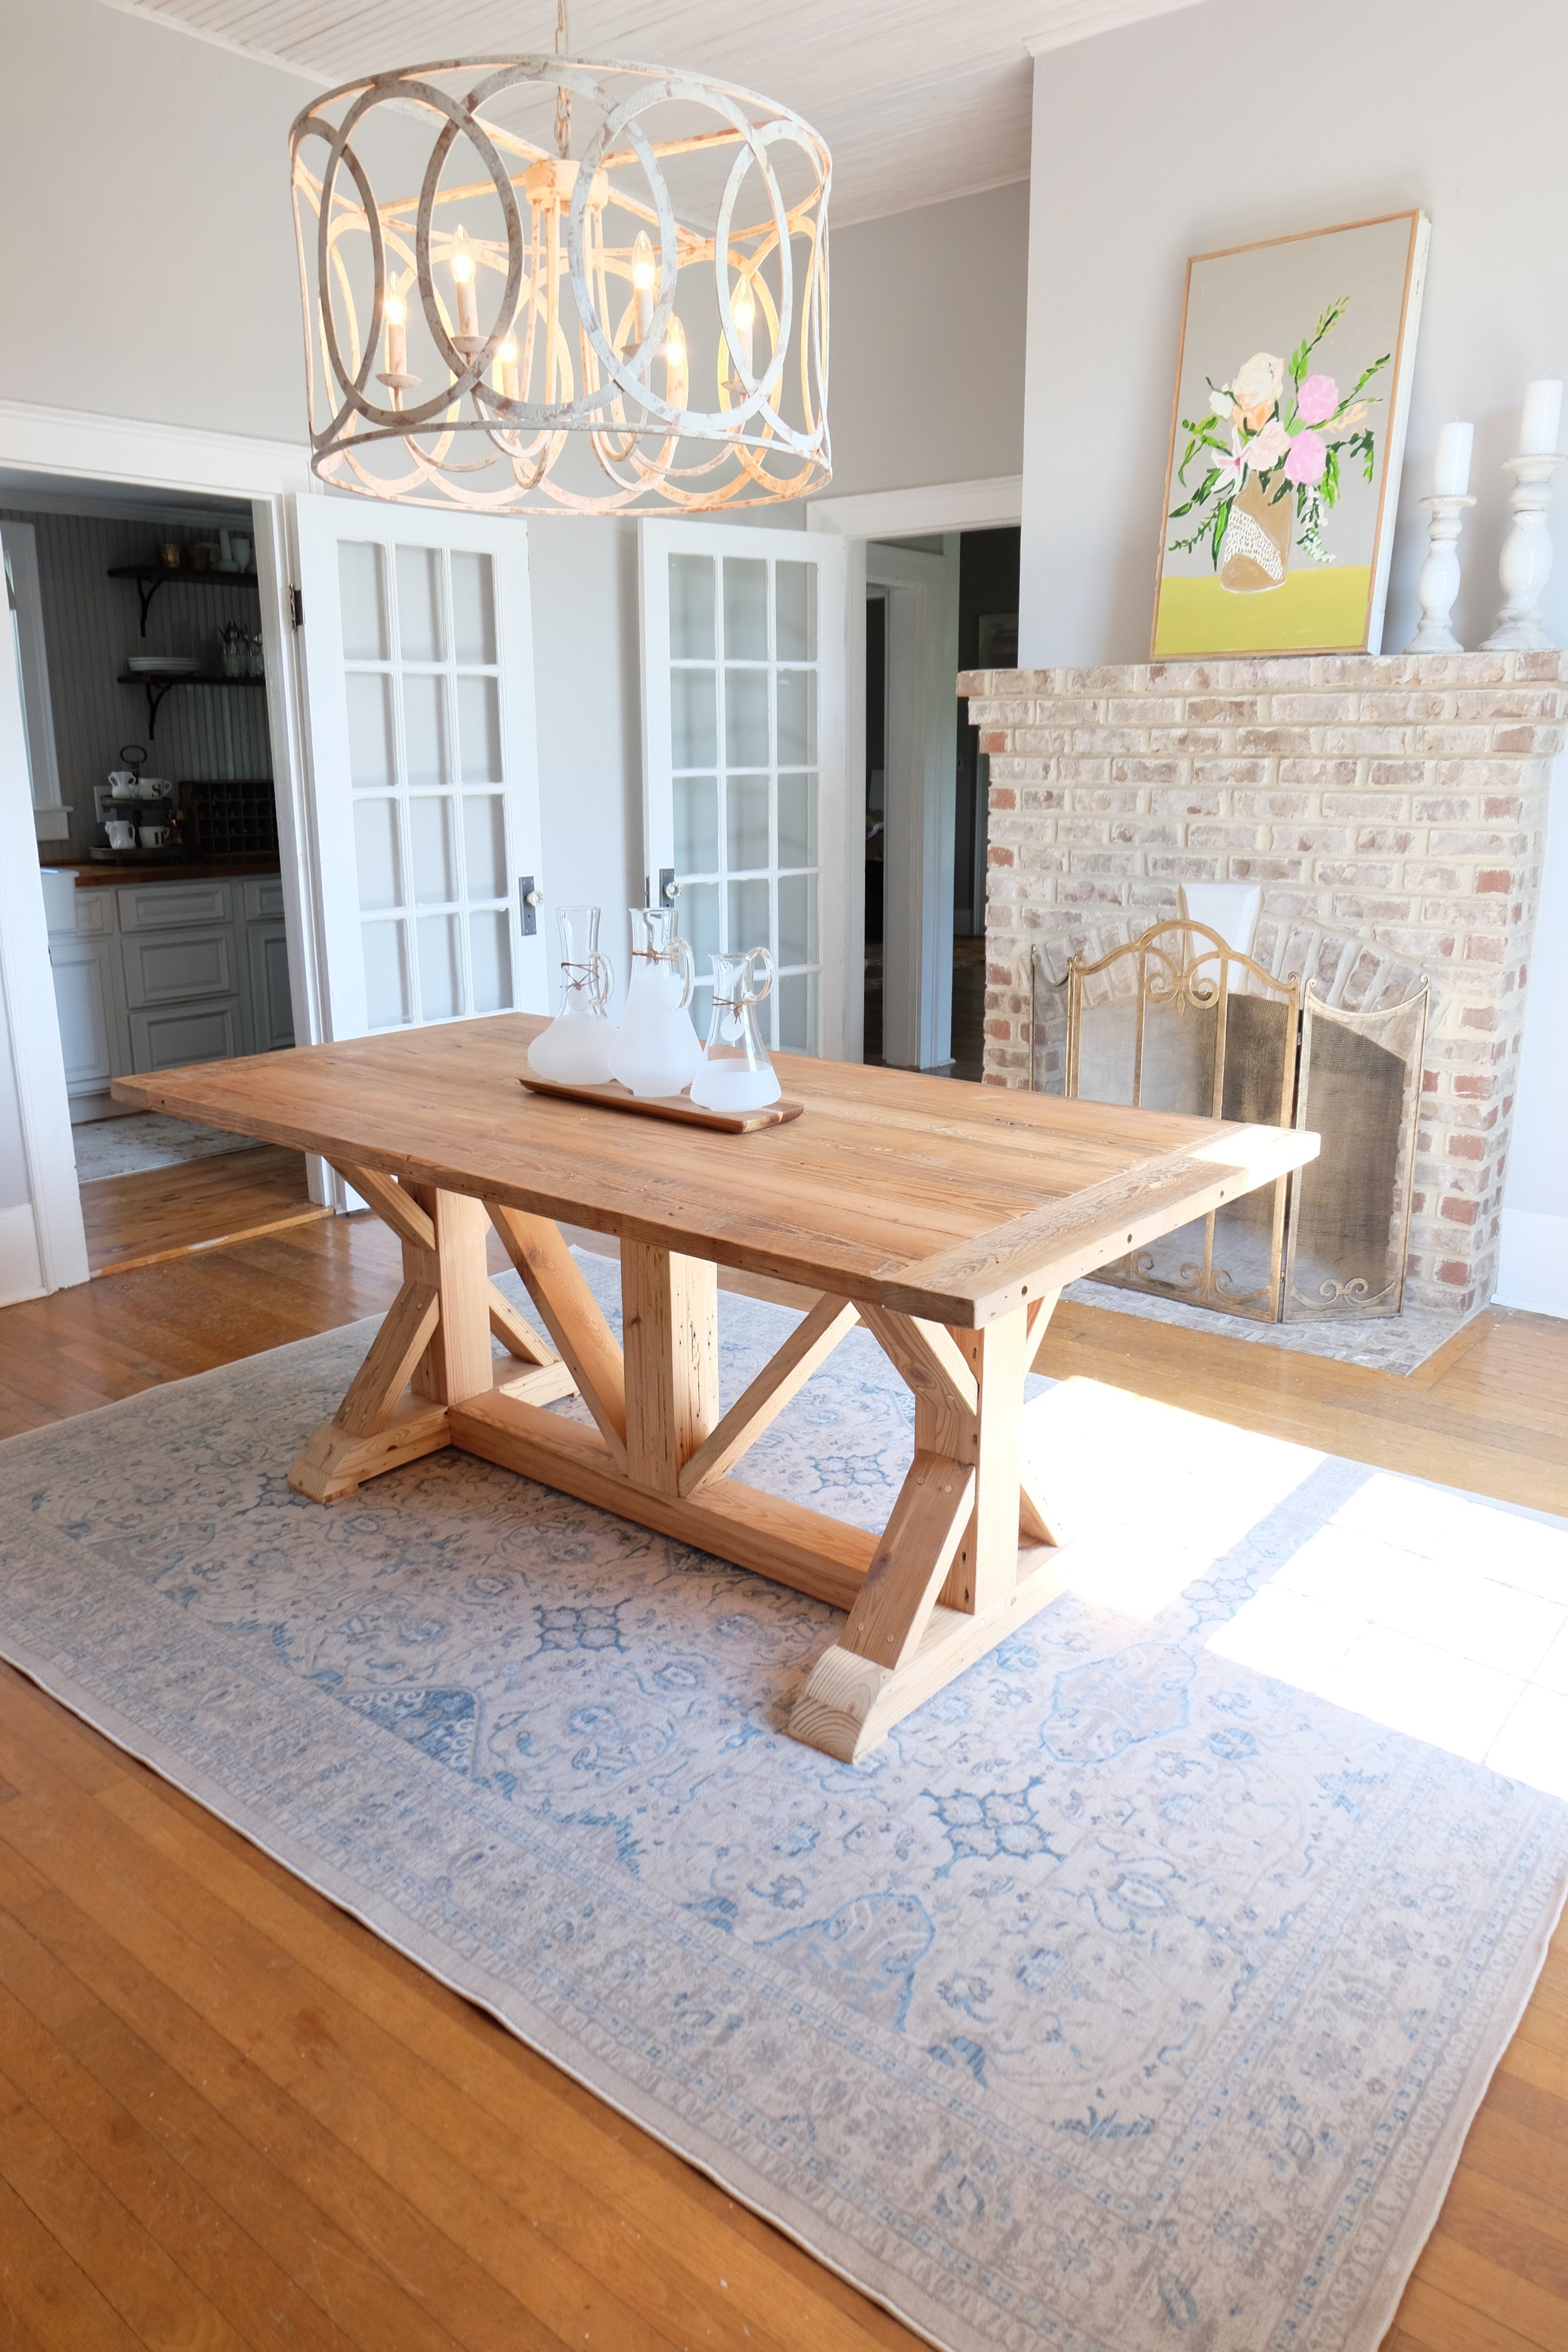 Our beautiful table is from   Lamon Luther  . It is made from plantation pine. They make such beautiful pieces. This one is hands down my favorite of theirs!